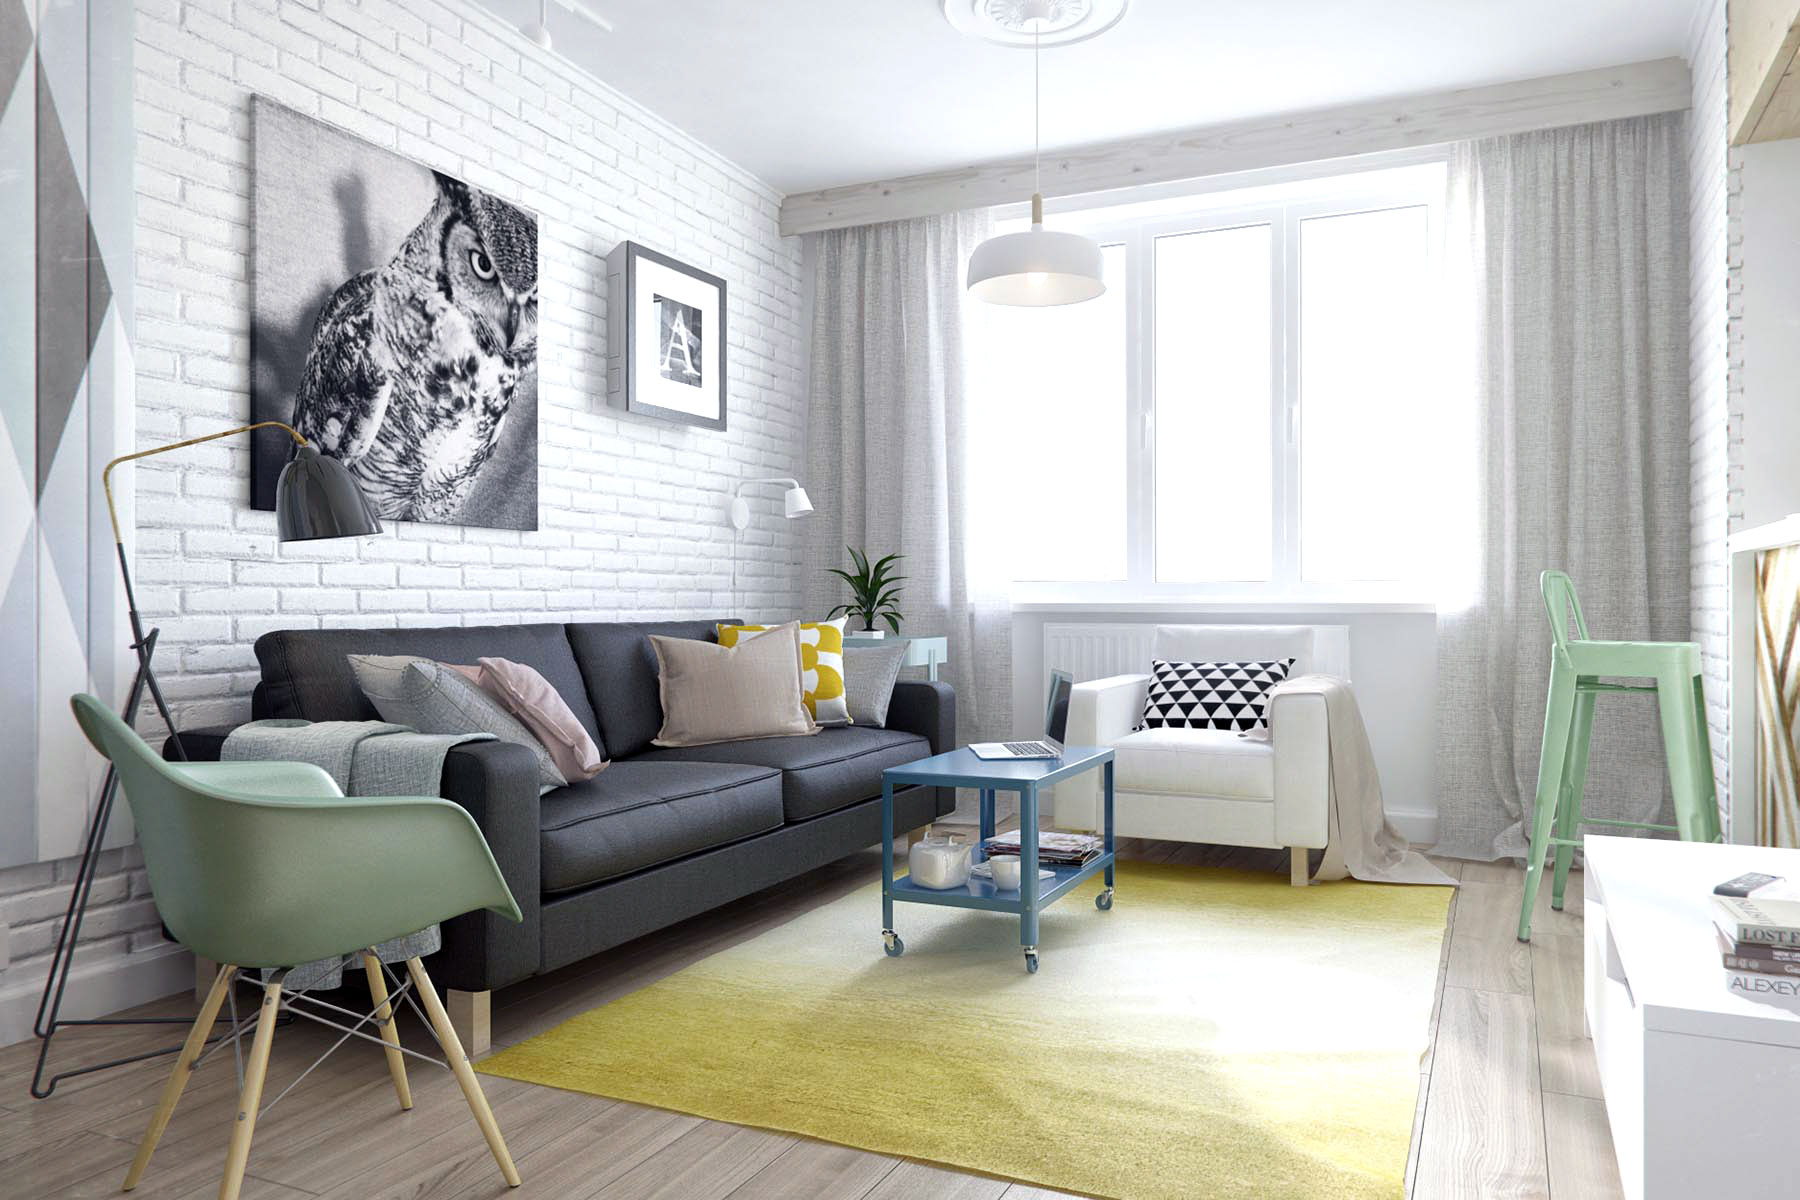 SMALL RUSSIAN STUDIO APARTMENT 500 SQUARE FEET IN PASTEL